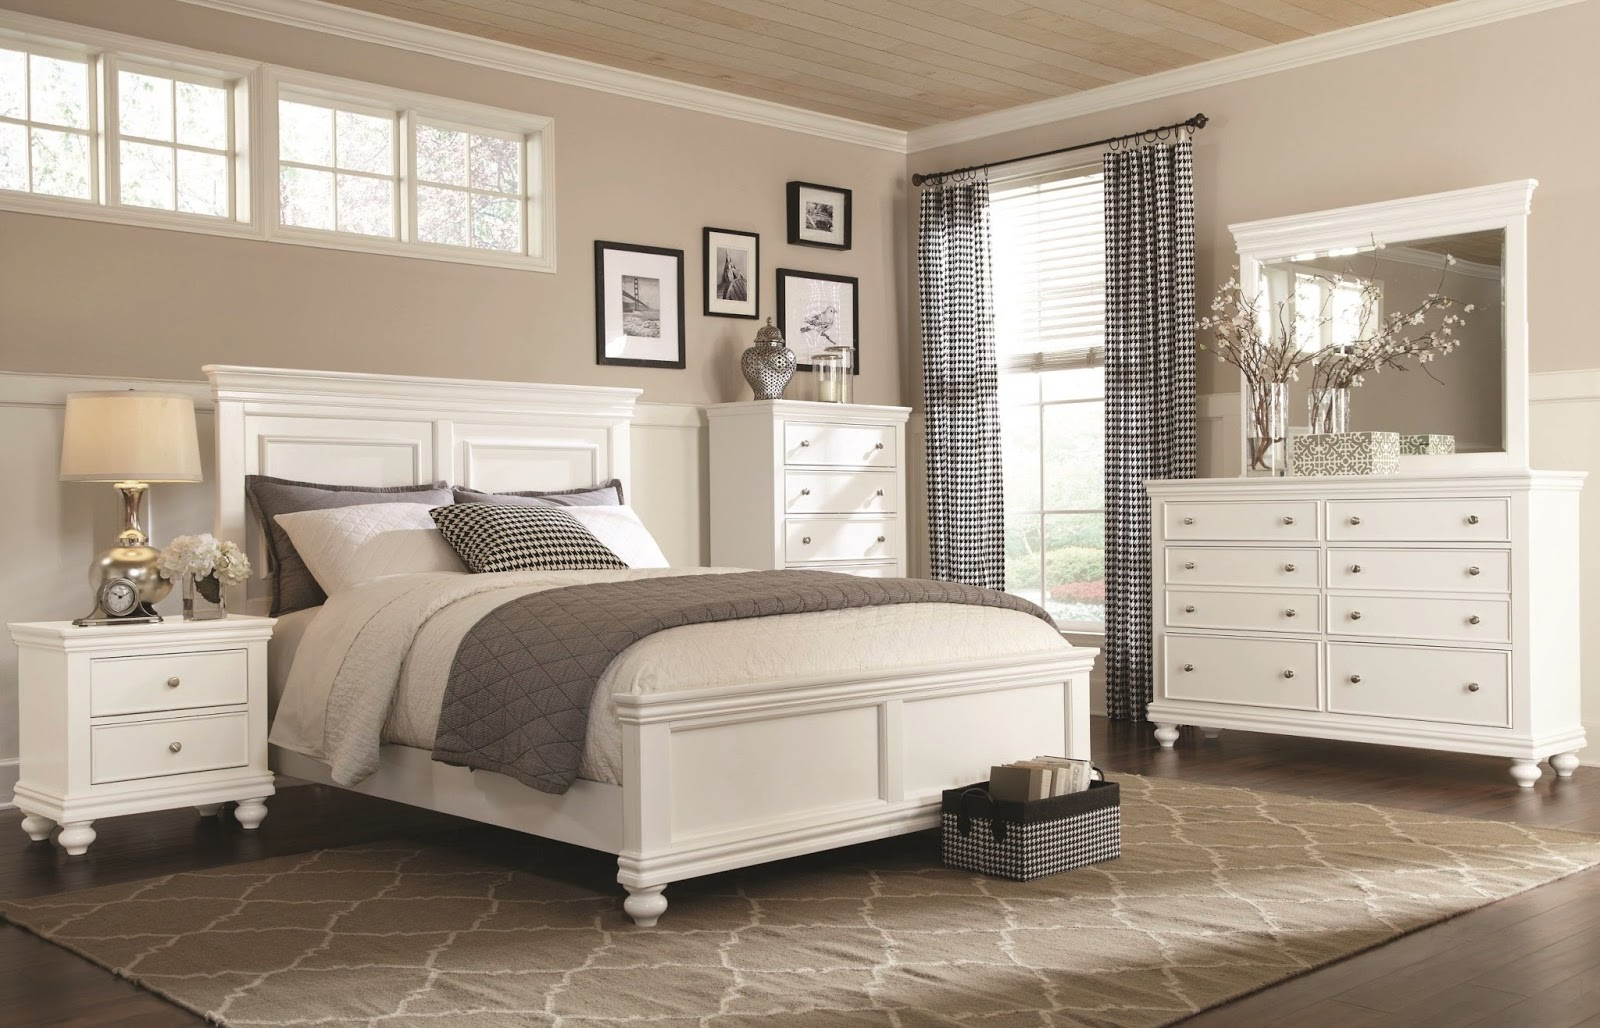 PORTOFOLIO) White Bedroom Furniture for Adults You Will Love